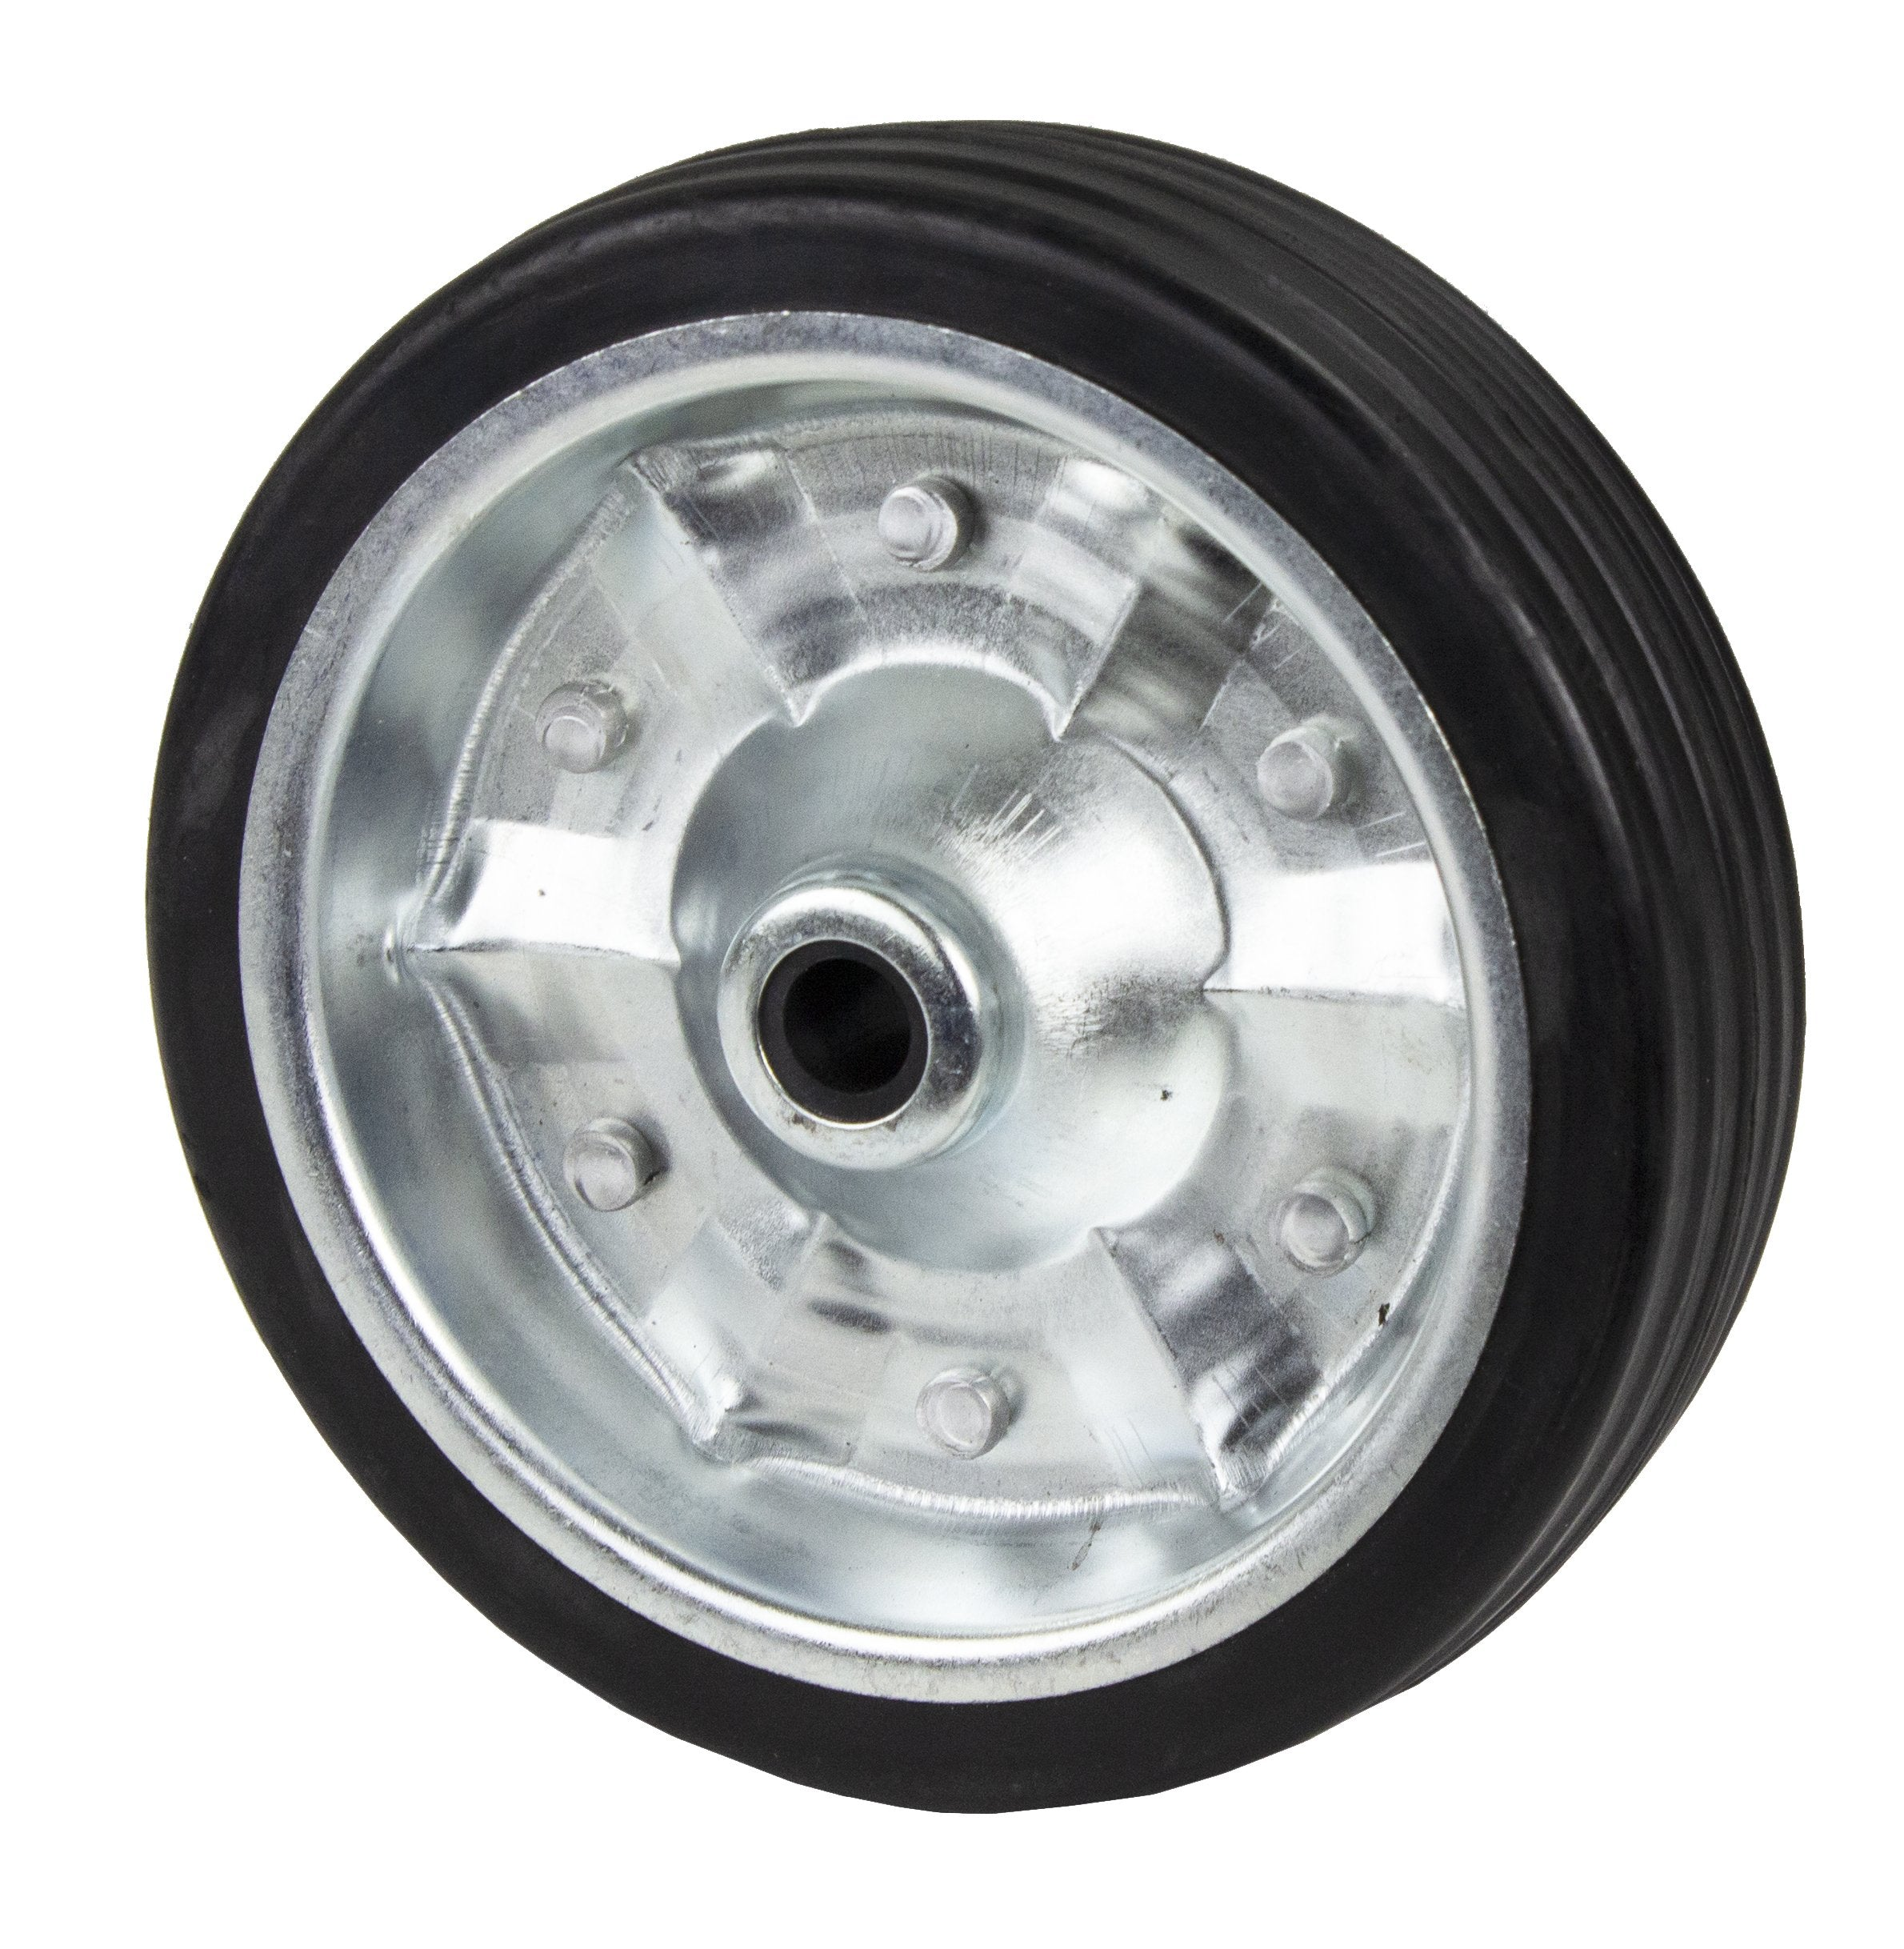 "Replacement Wheel Suits 8 "" Jockey Wheel"